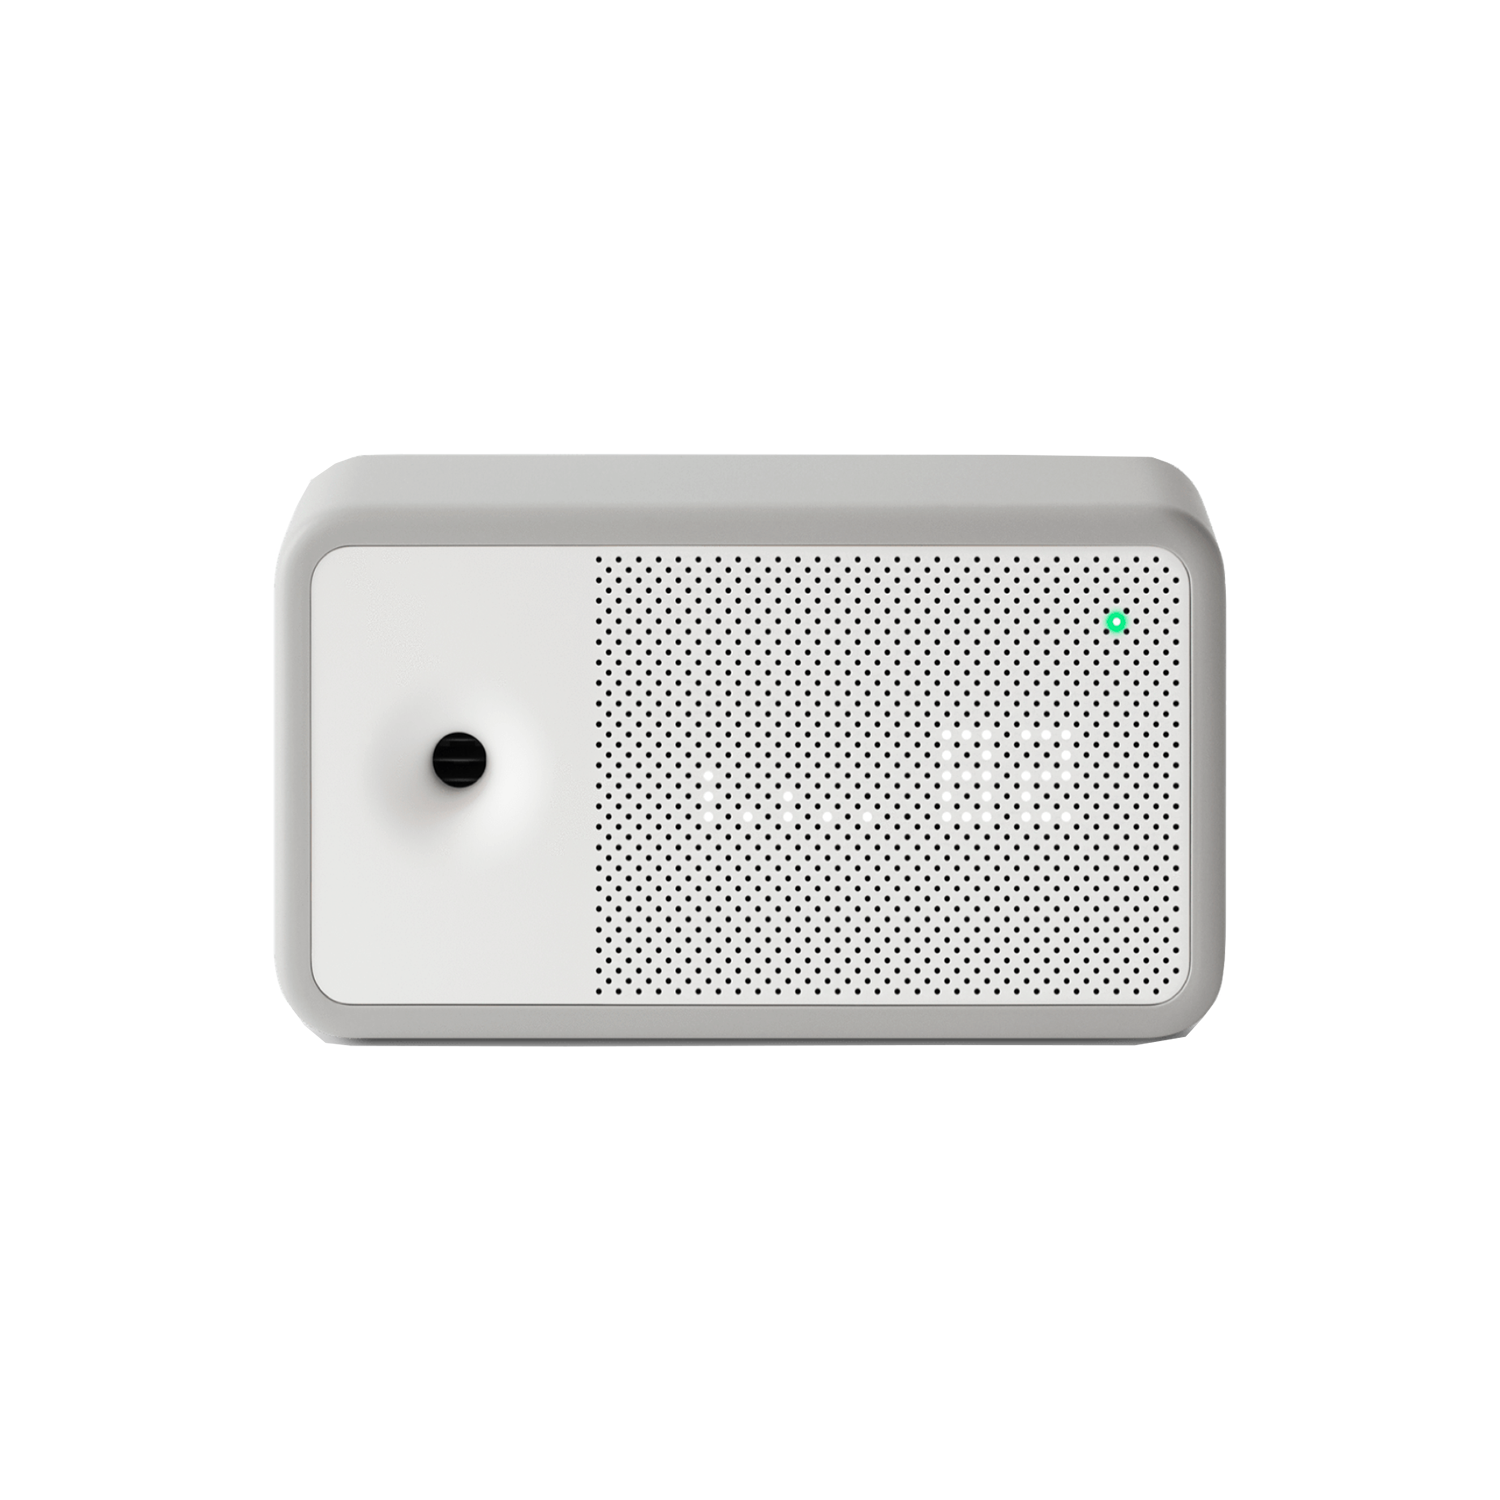 Awair Element - WiFi Air Quality Monitor